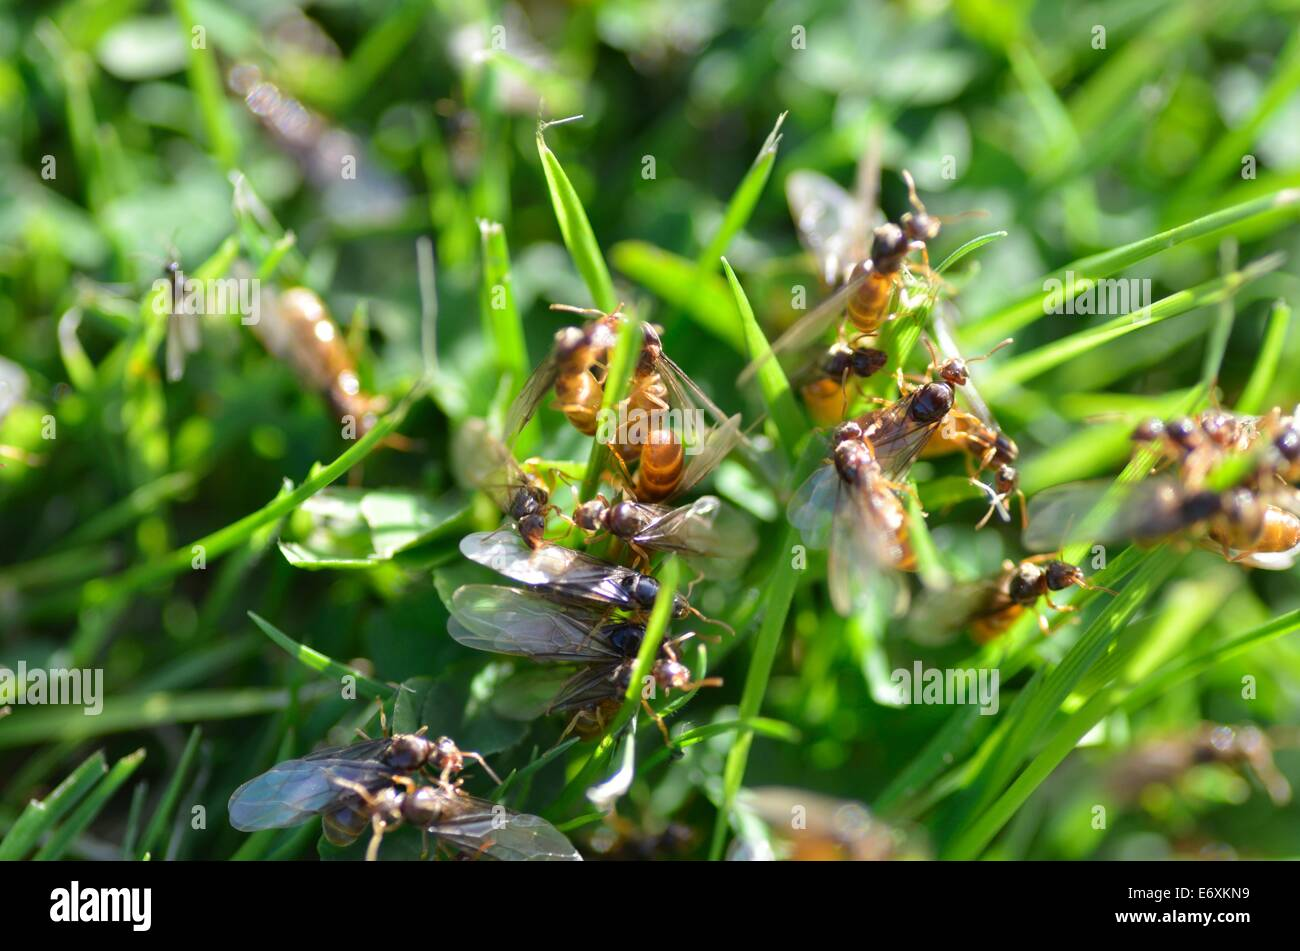 Swarming Ants High Resolution Stock Photography And Images Alamy